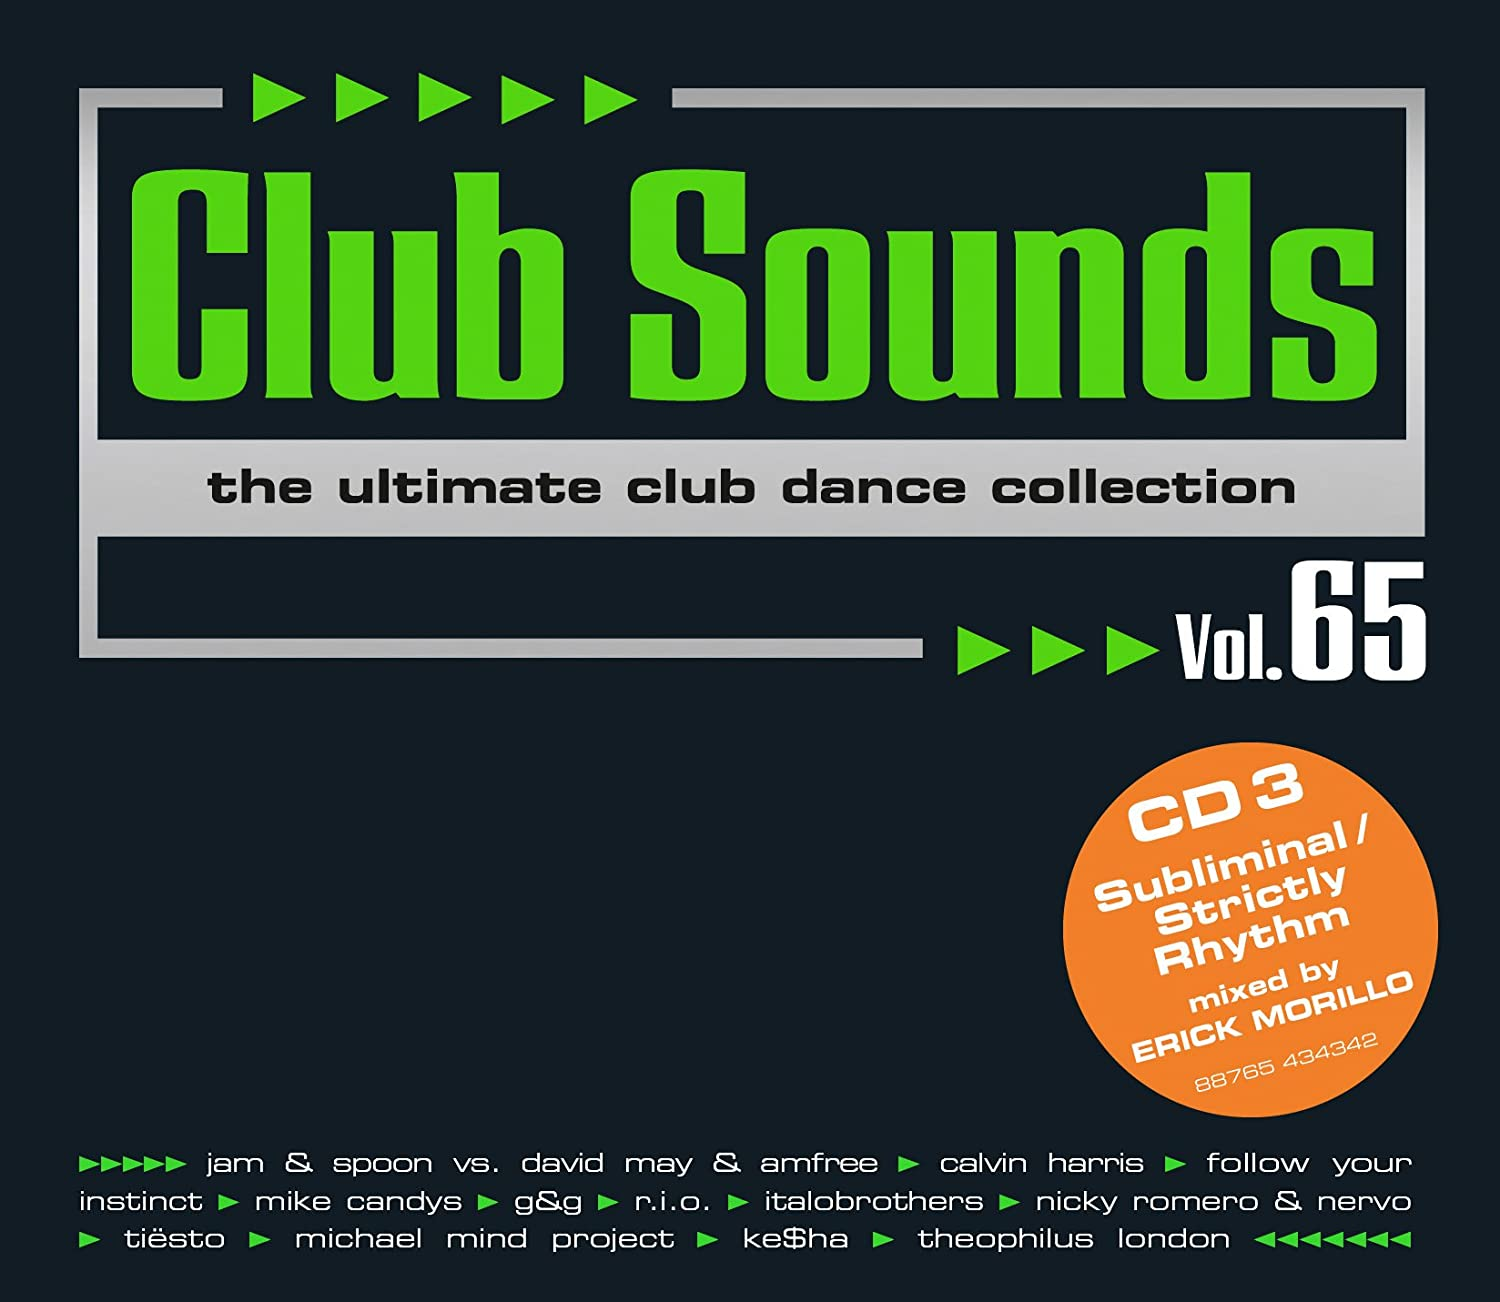 Club Sounds - Vol.65